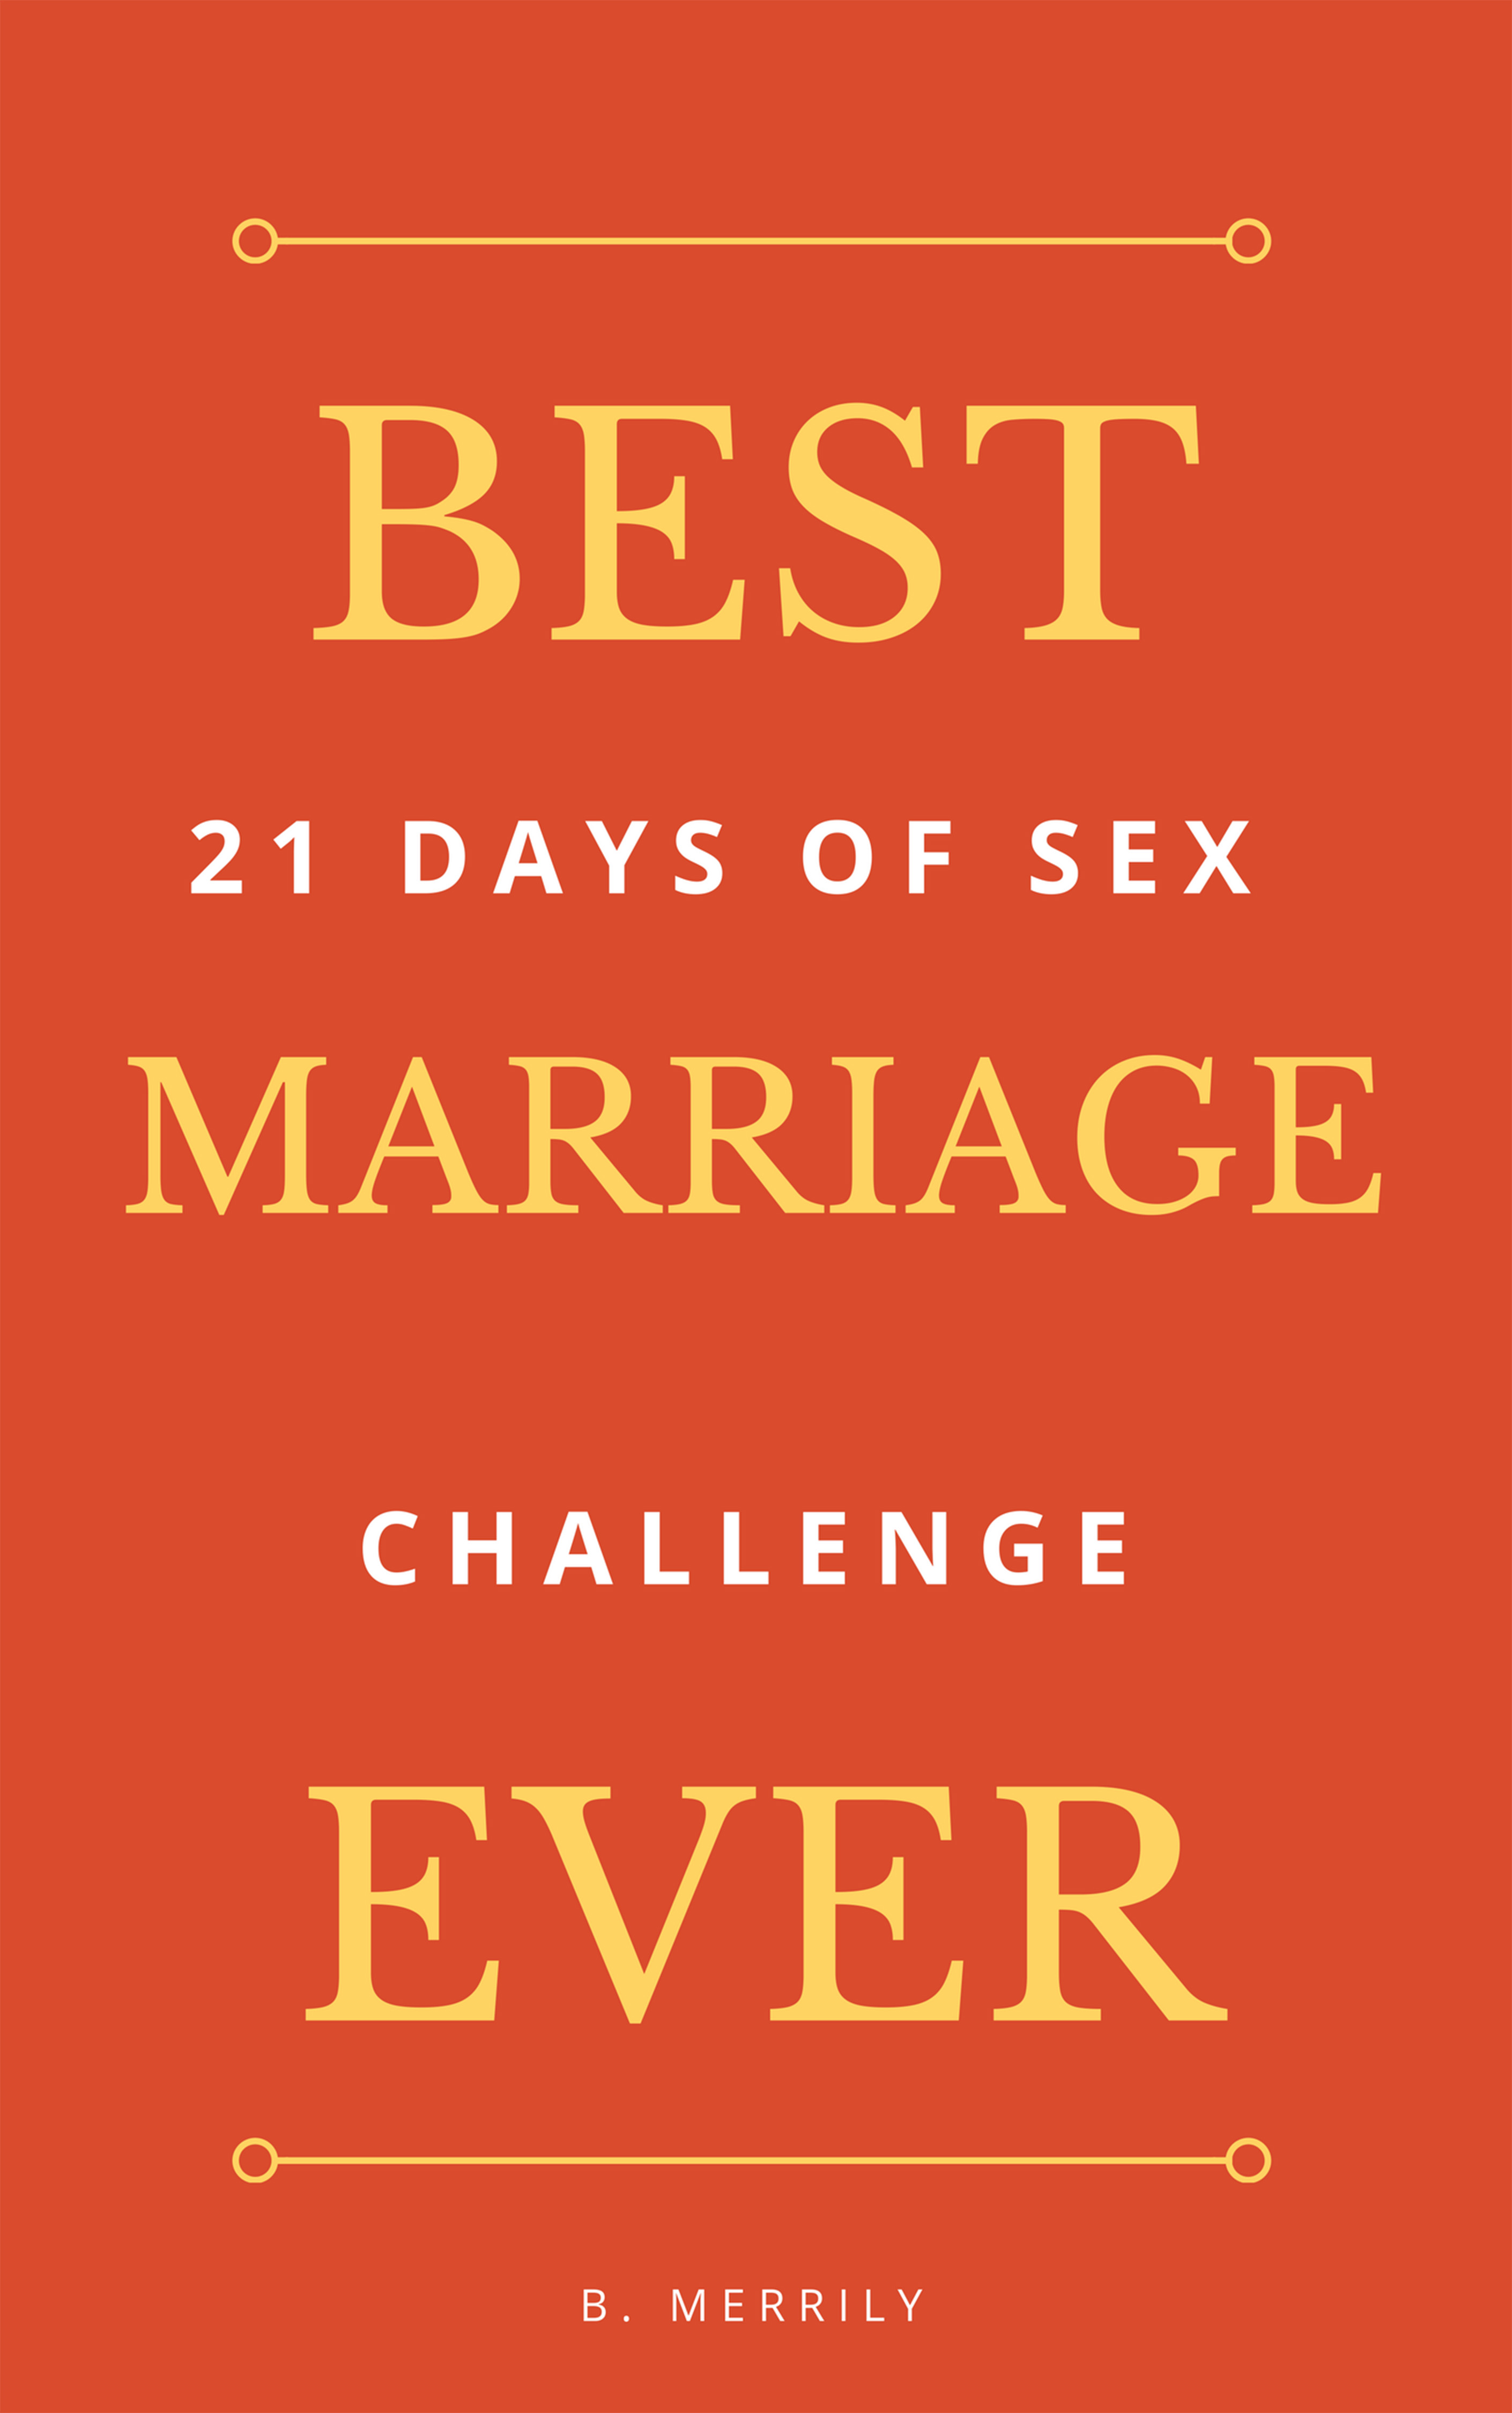 Devotions for dating couples epub to mobi